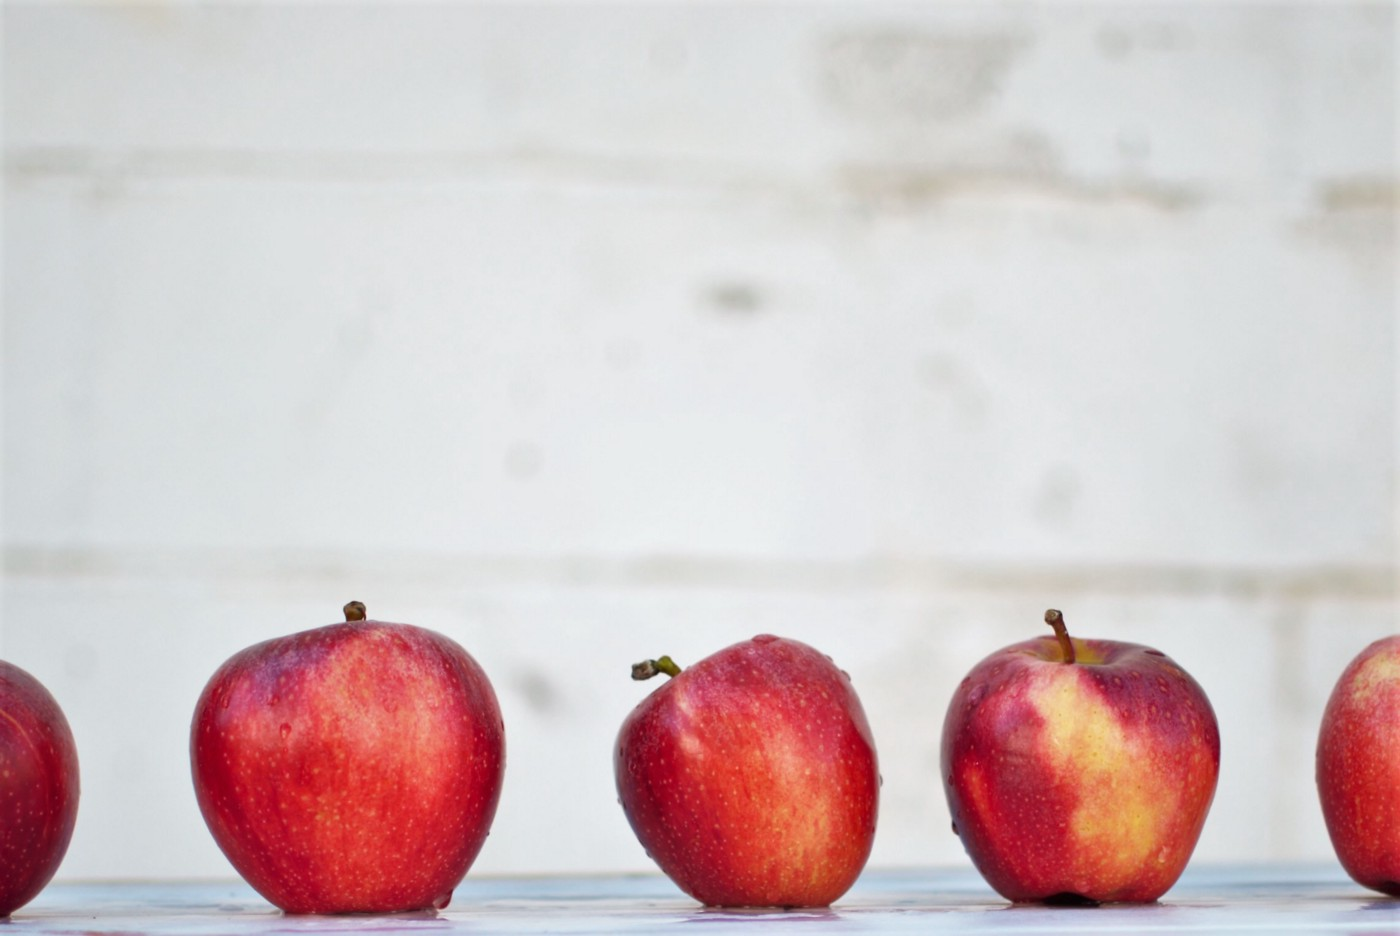 A lineup of red apples differing slightly in shade and size.